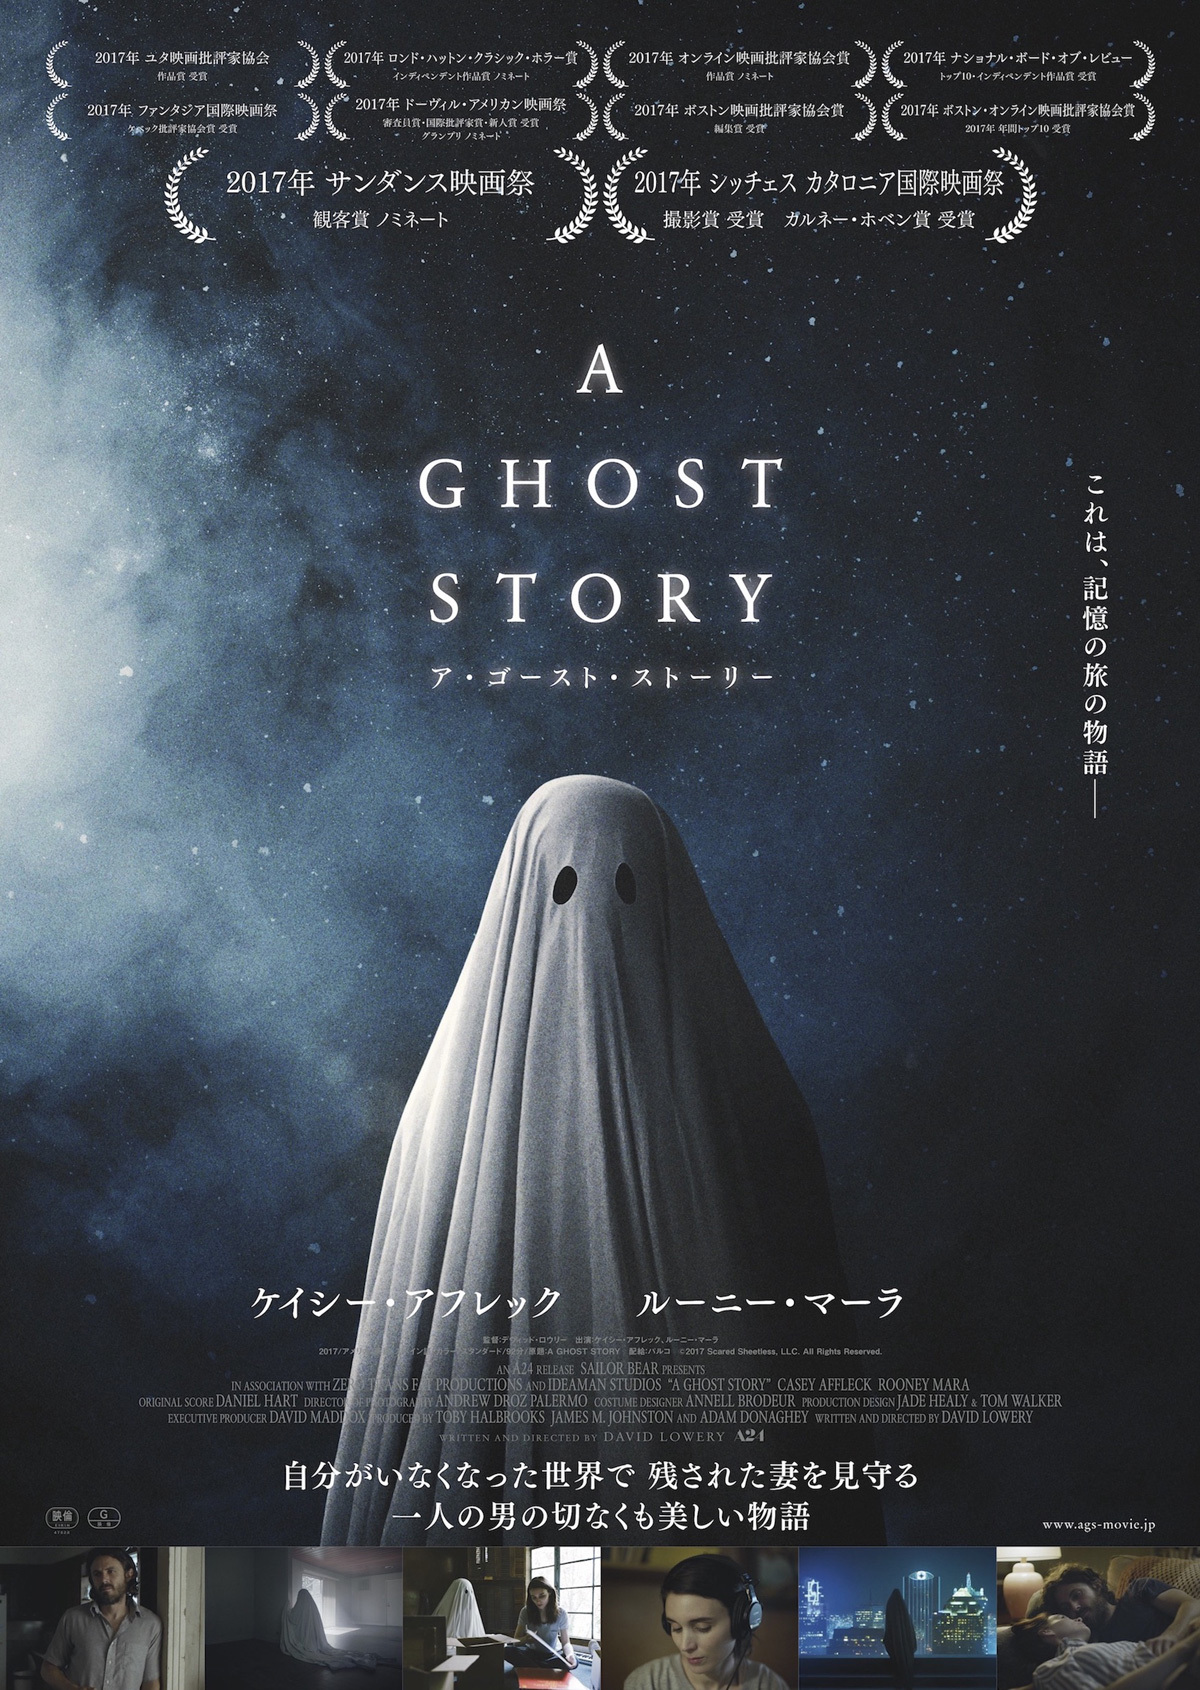 『A GHOST STORY』